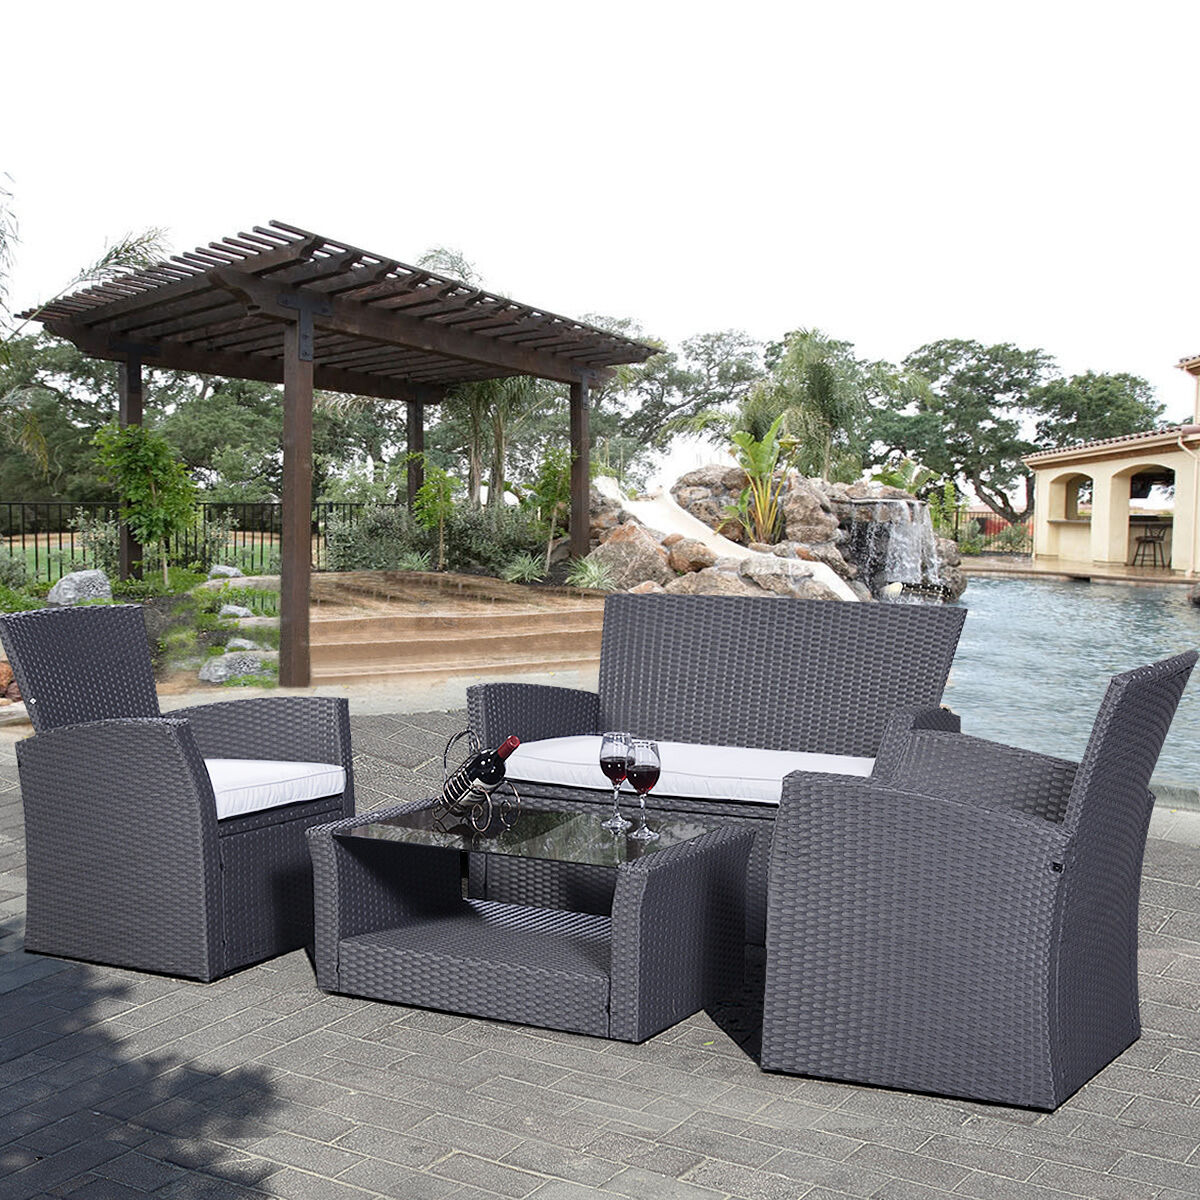 4pc rattan sofa dining set garden furniture patio. Black Bedroom Furniture Sets. Home Design Ideas